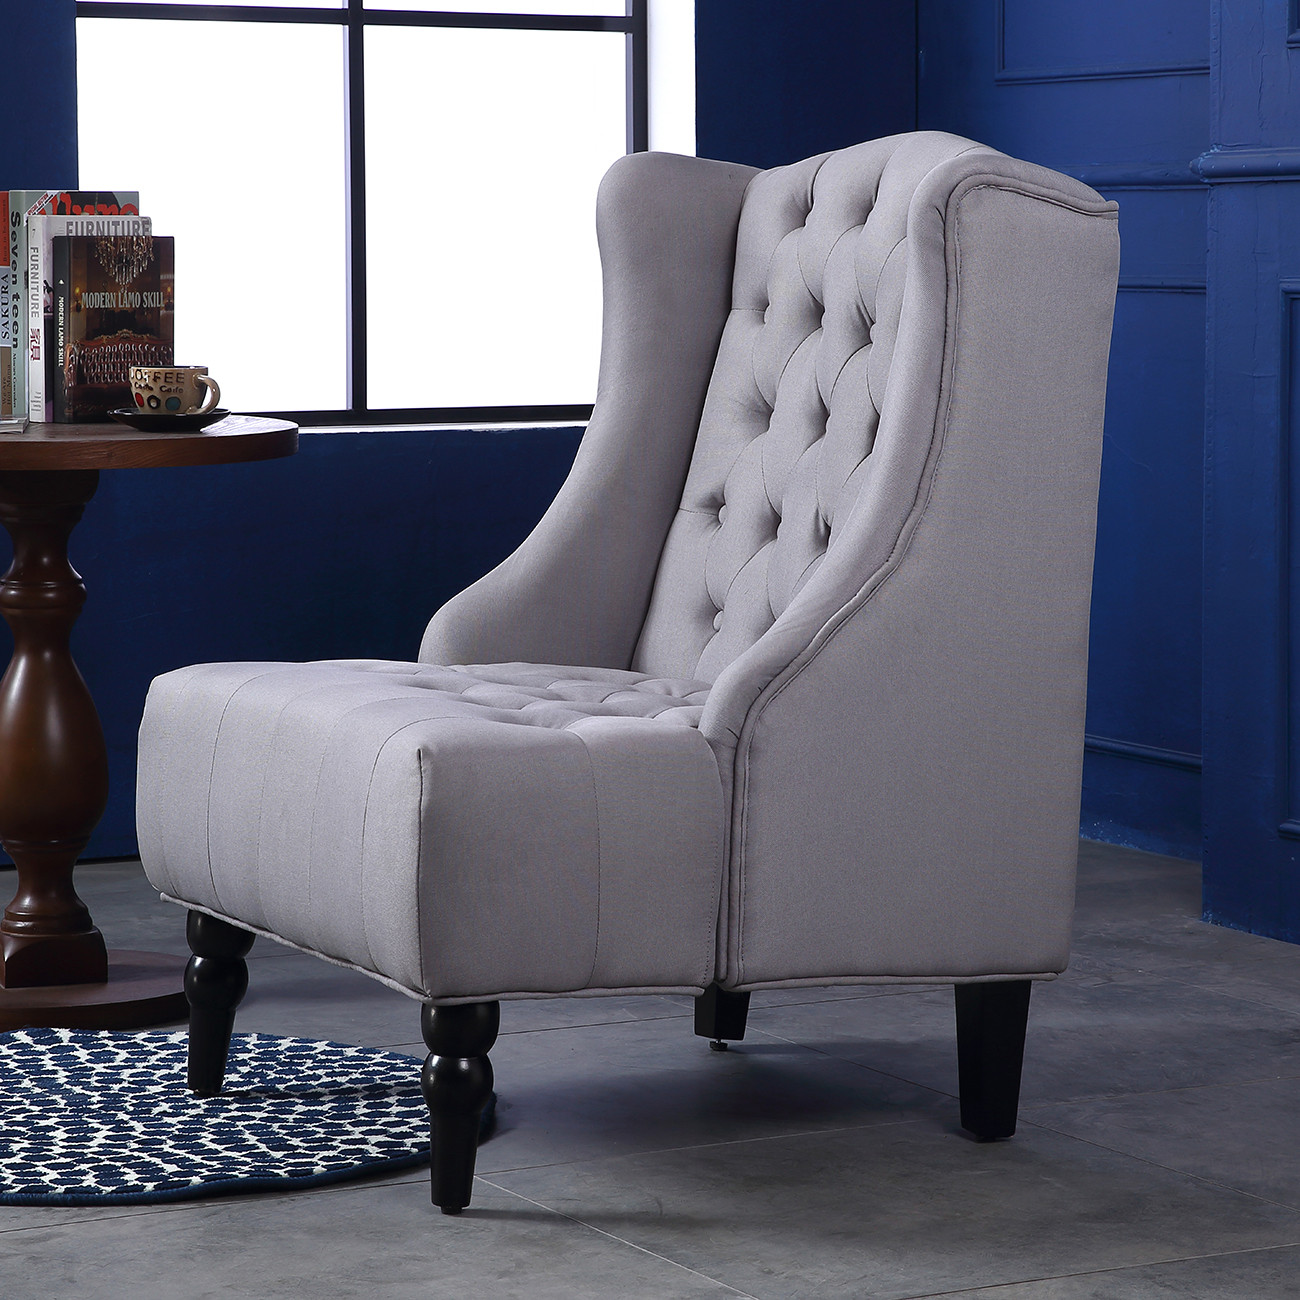 Best ideas about Family Room Chairs . Save or Pin Wingback Accent Chair Tall High back Living Room Tufted Now.